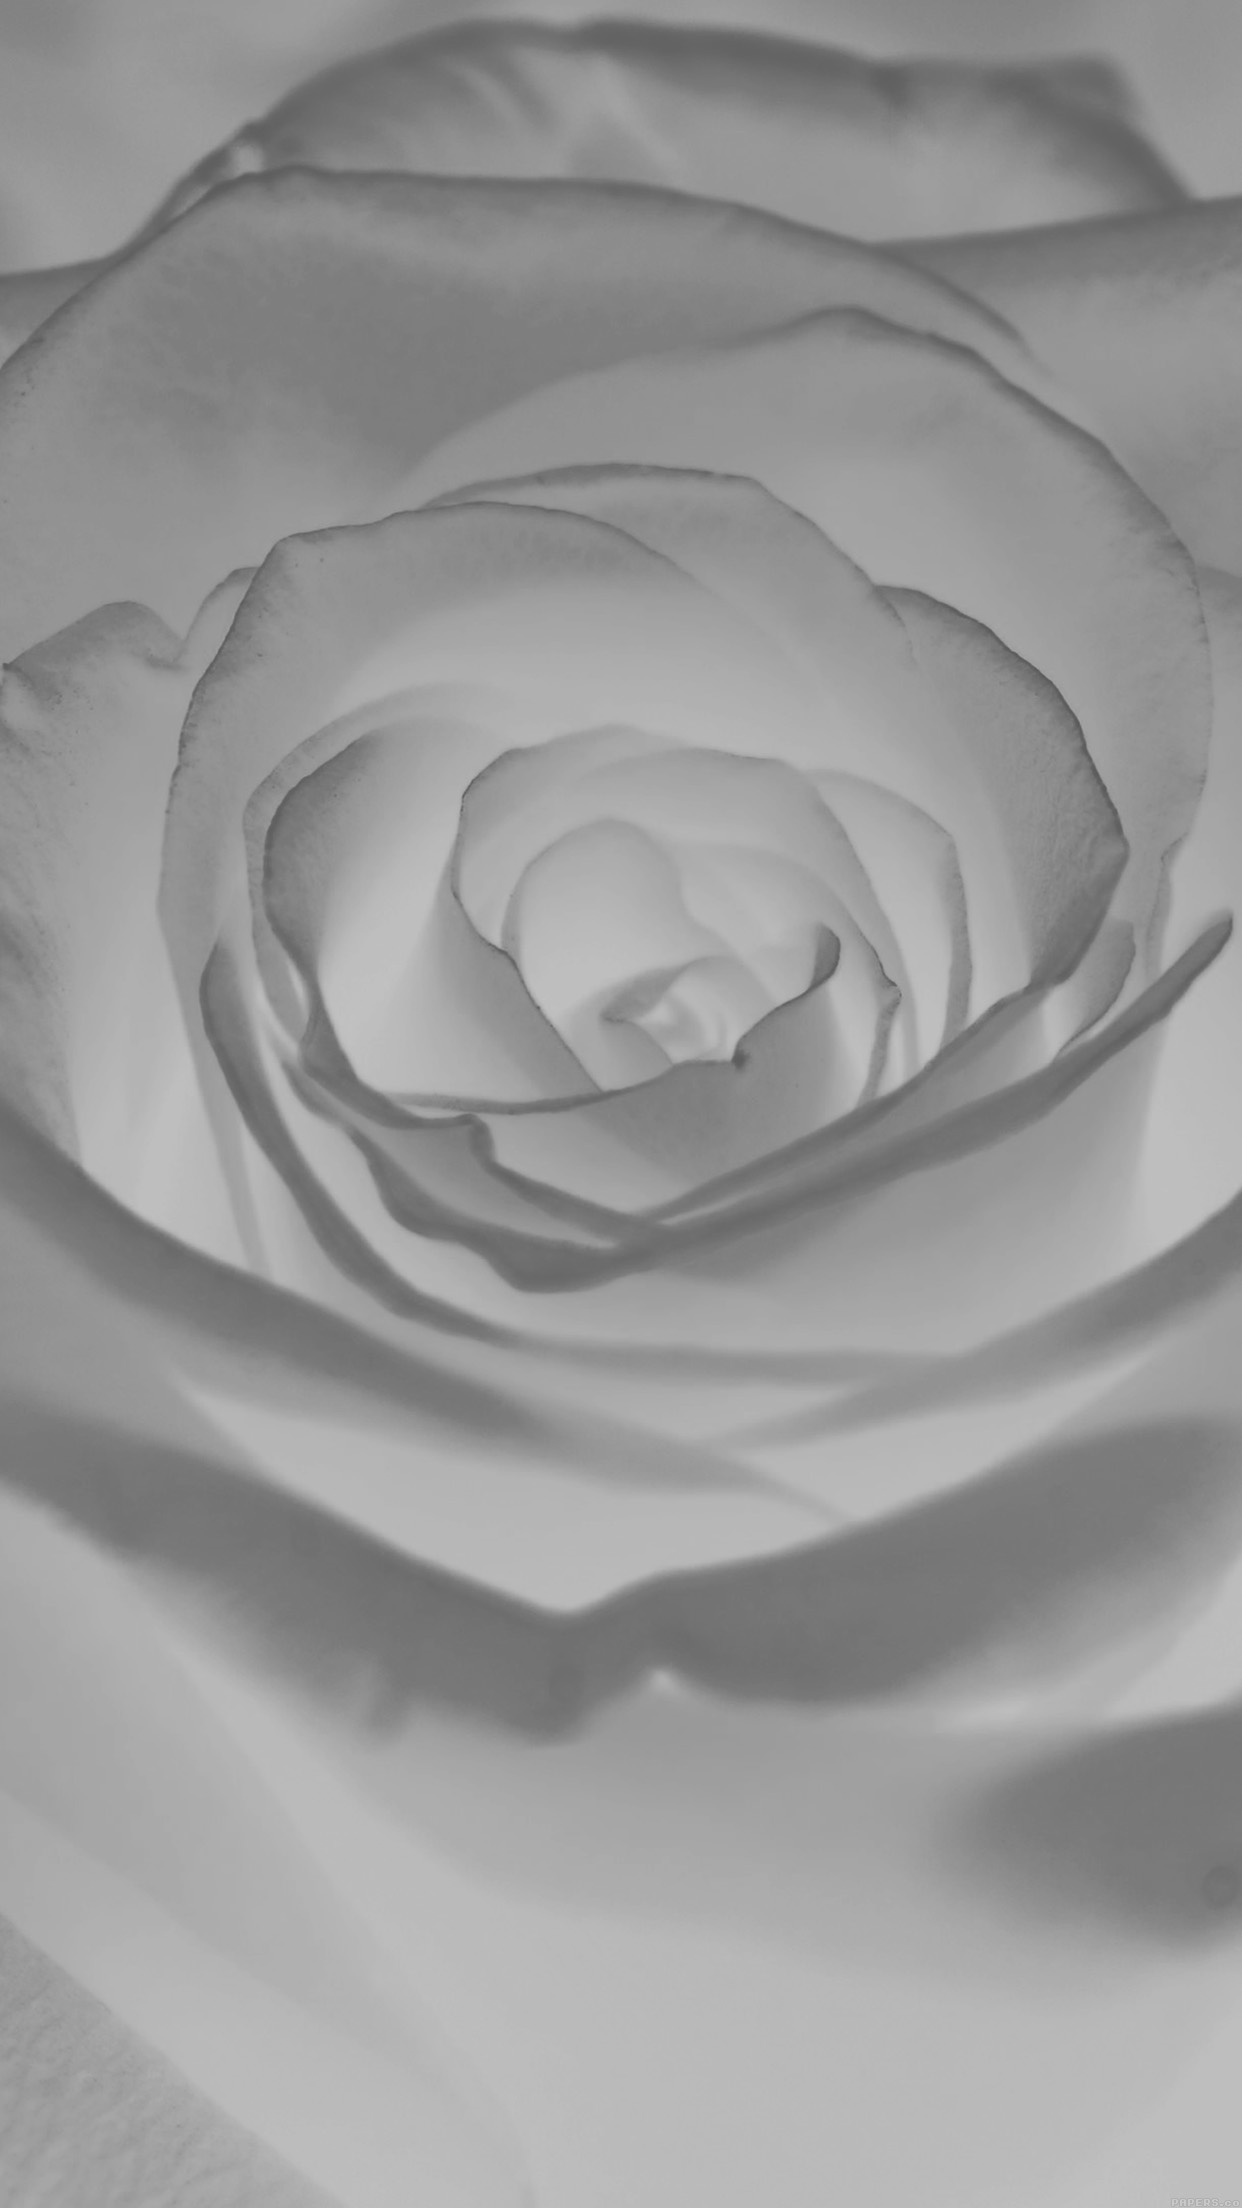 White Roses Wallpaper Iphone 6 Image Of Bear And Rose Imagetool Co